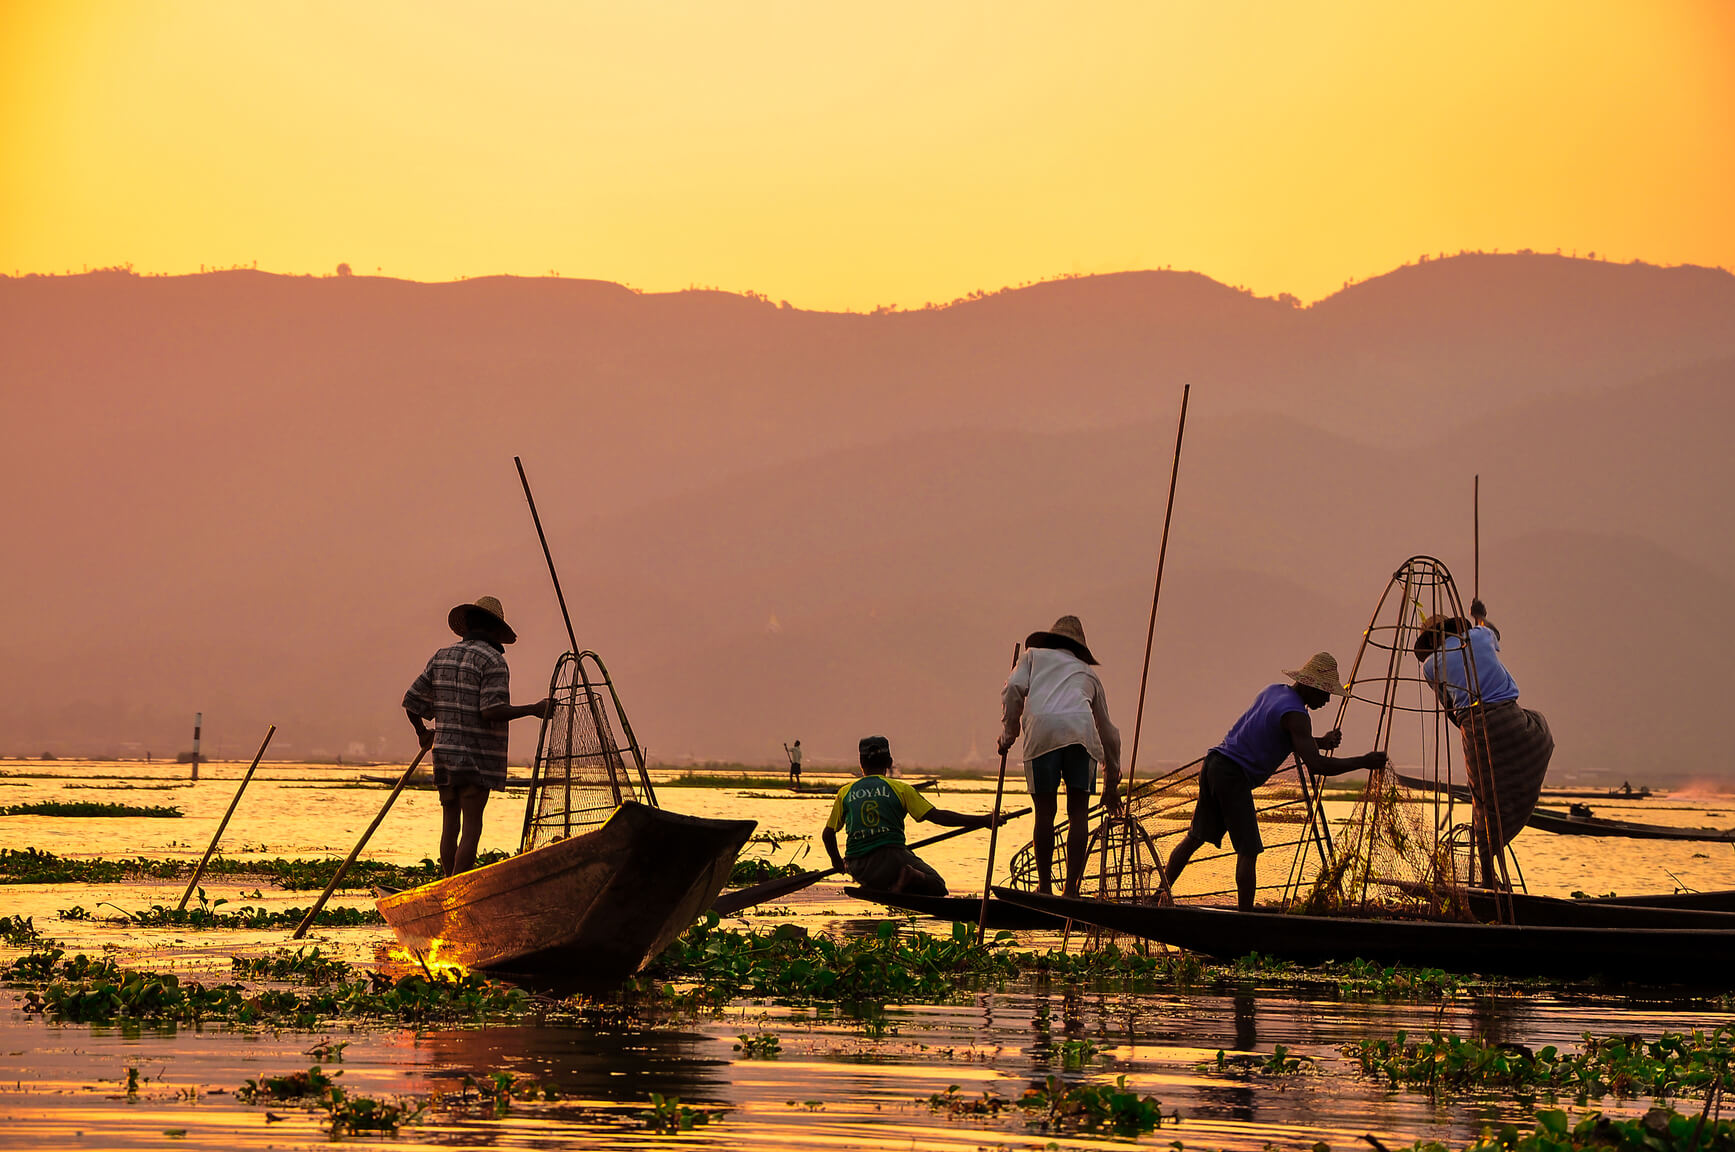 HOT!! New York to Myanmar for only $446 roundtrip